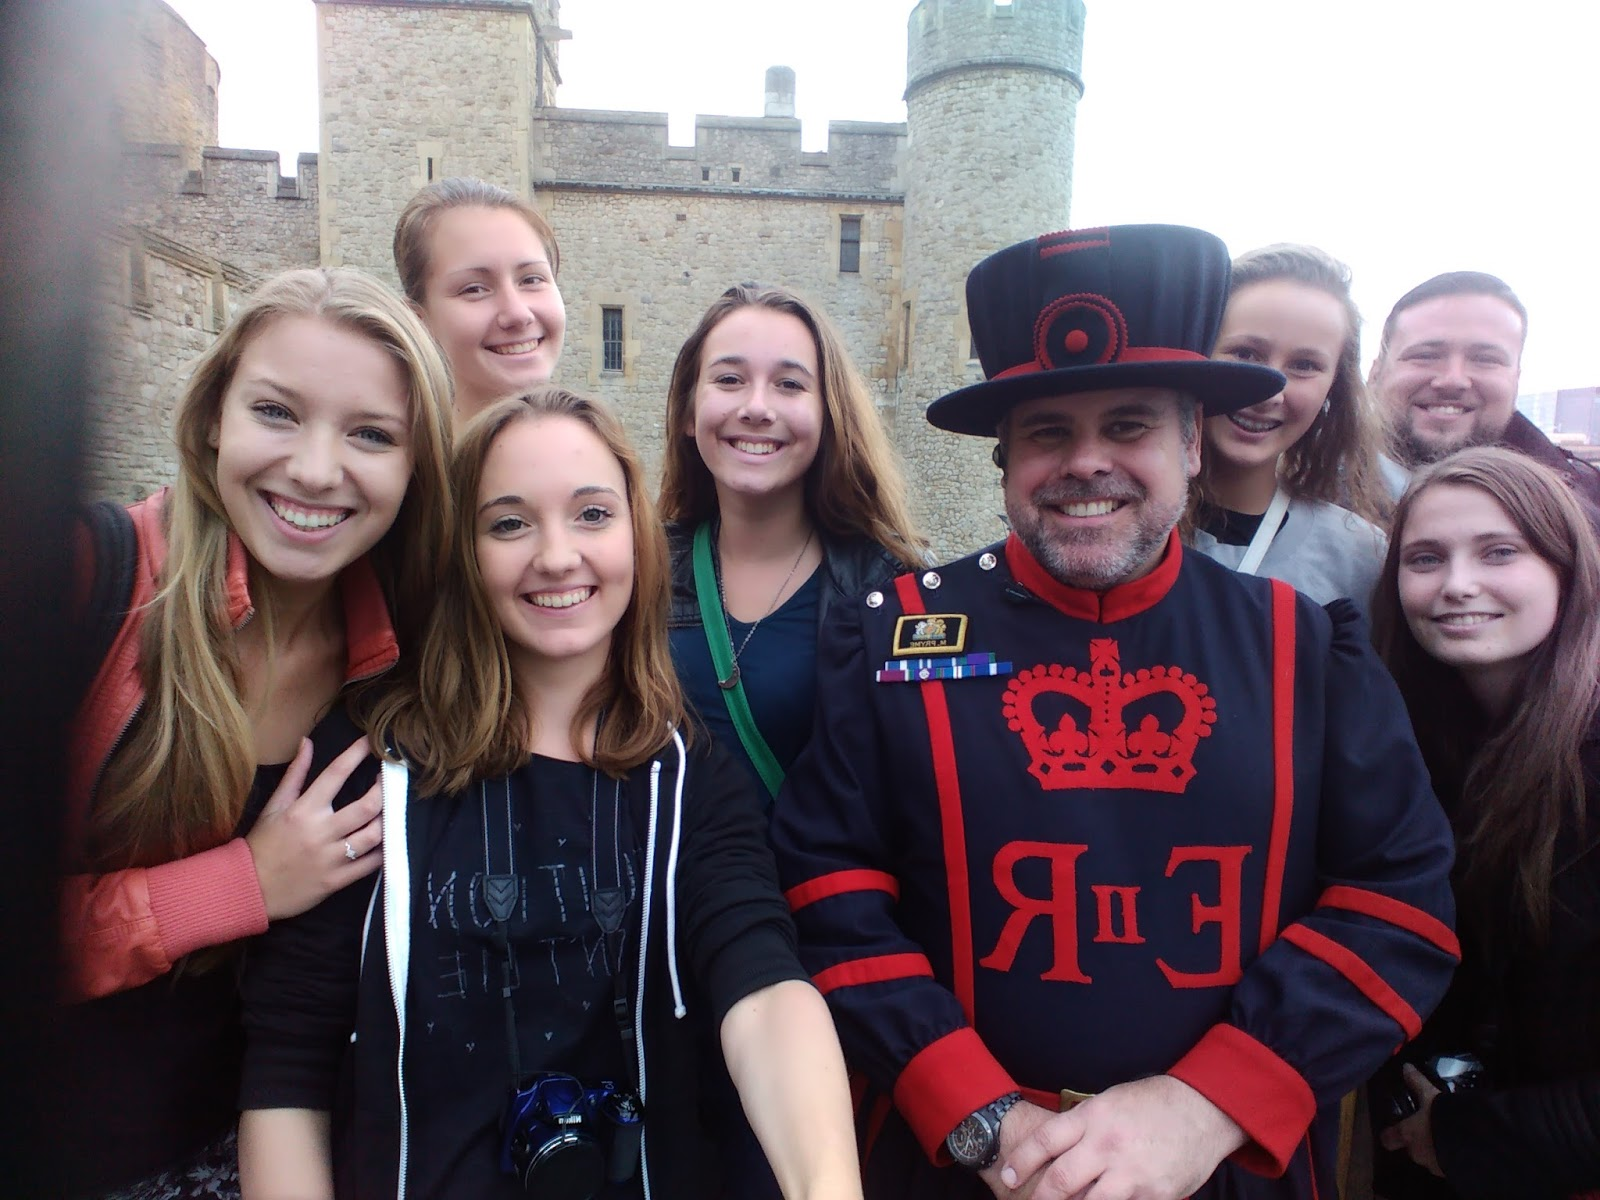 společná selfie s beefeaterem u Tower of London